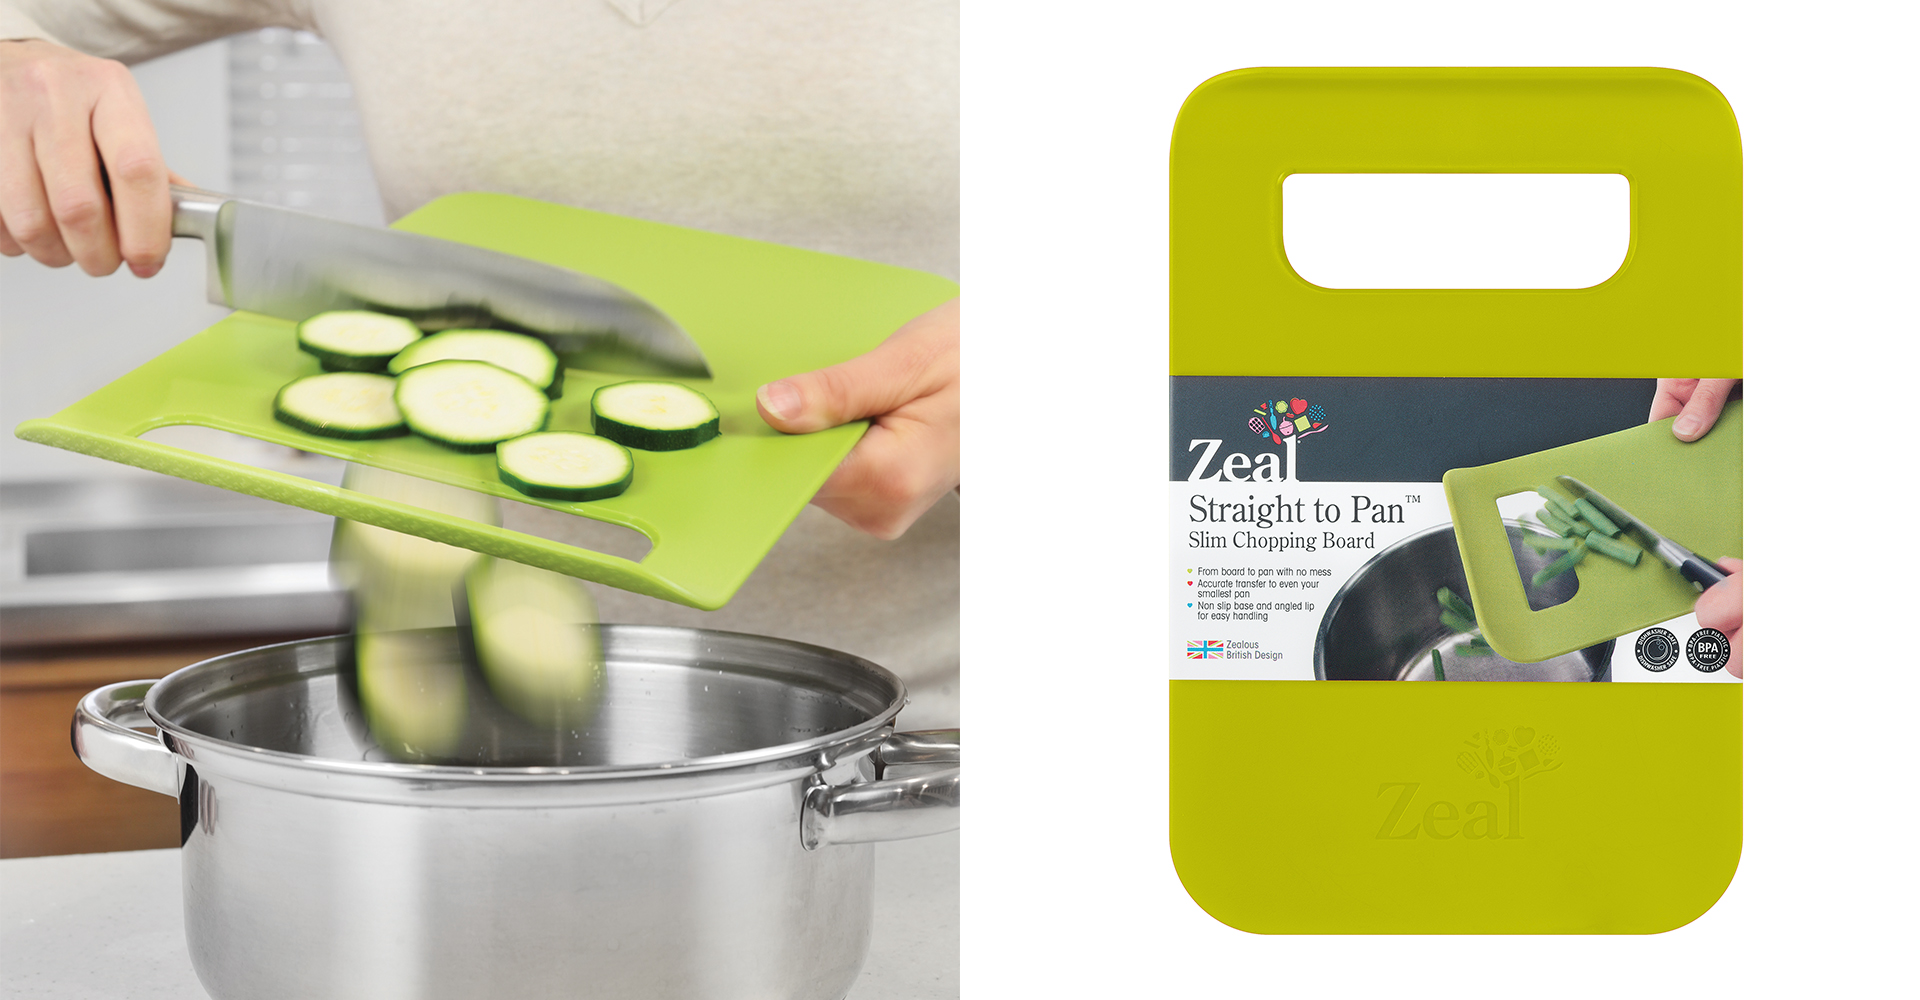 CKS Control range - Zeal - Thin board - cooking - chopped - courgettes - top view - knife